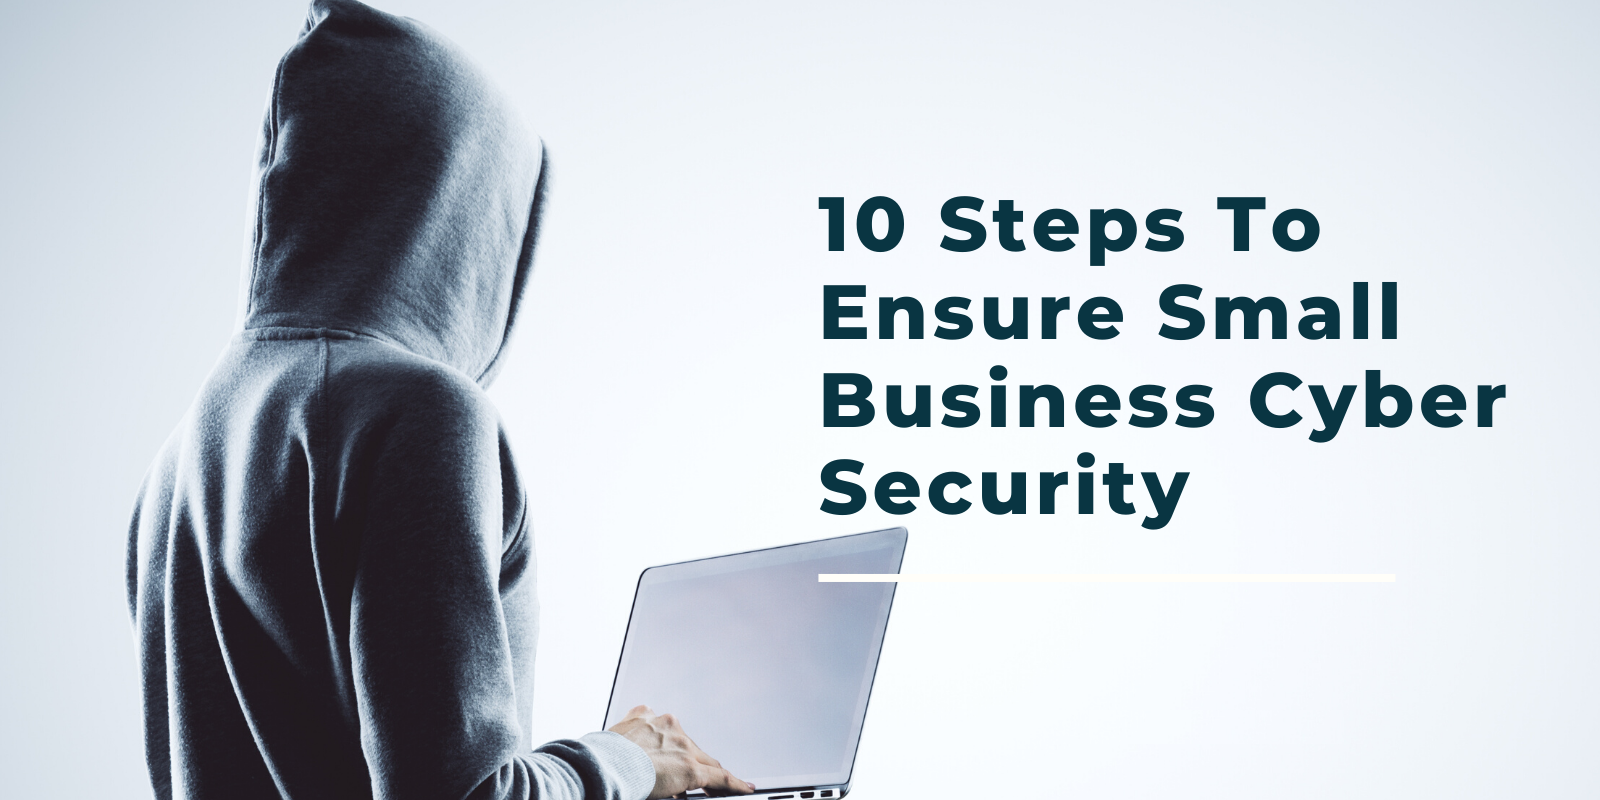 10 Steps For Ensuring Cyber Security For Small Business